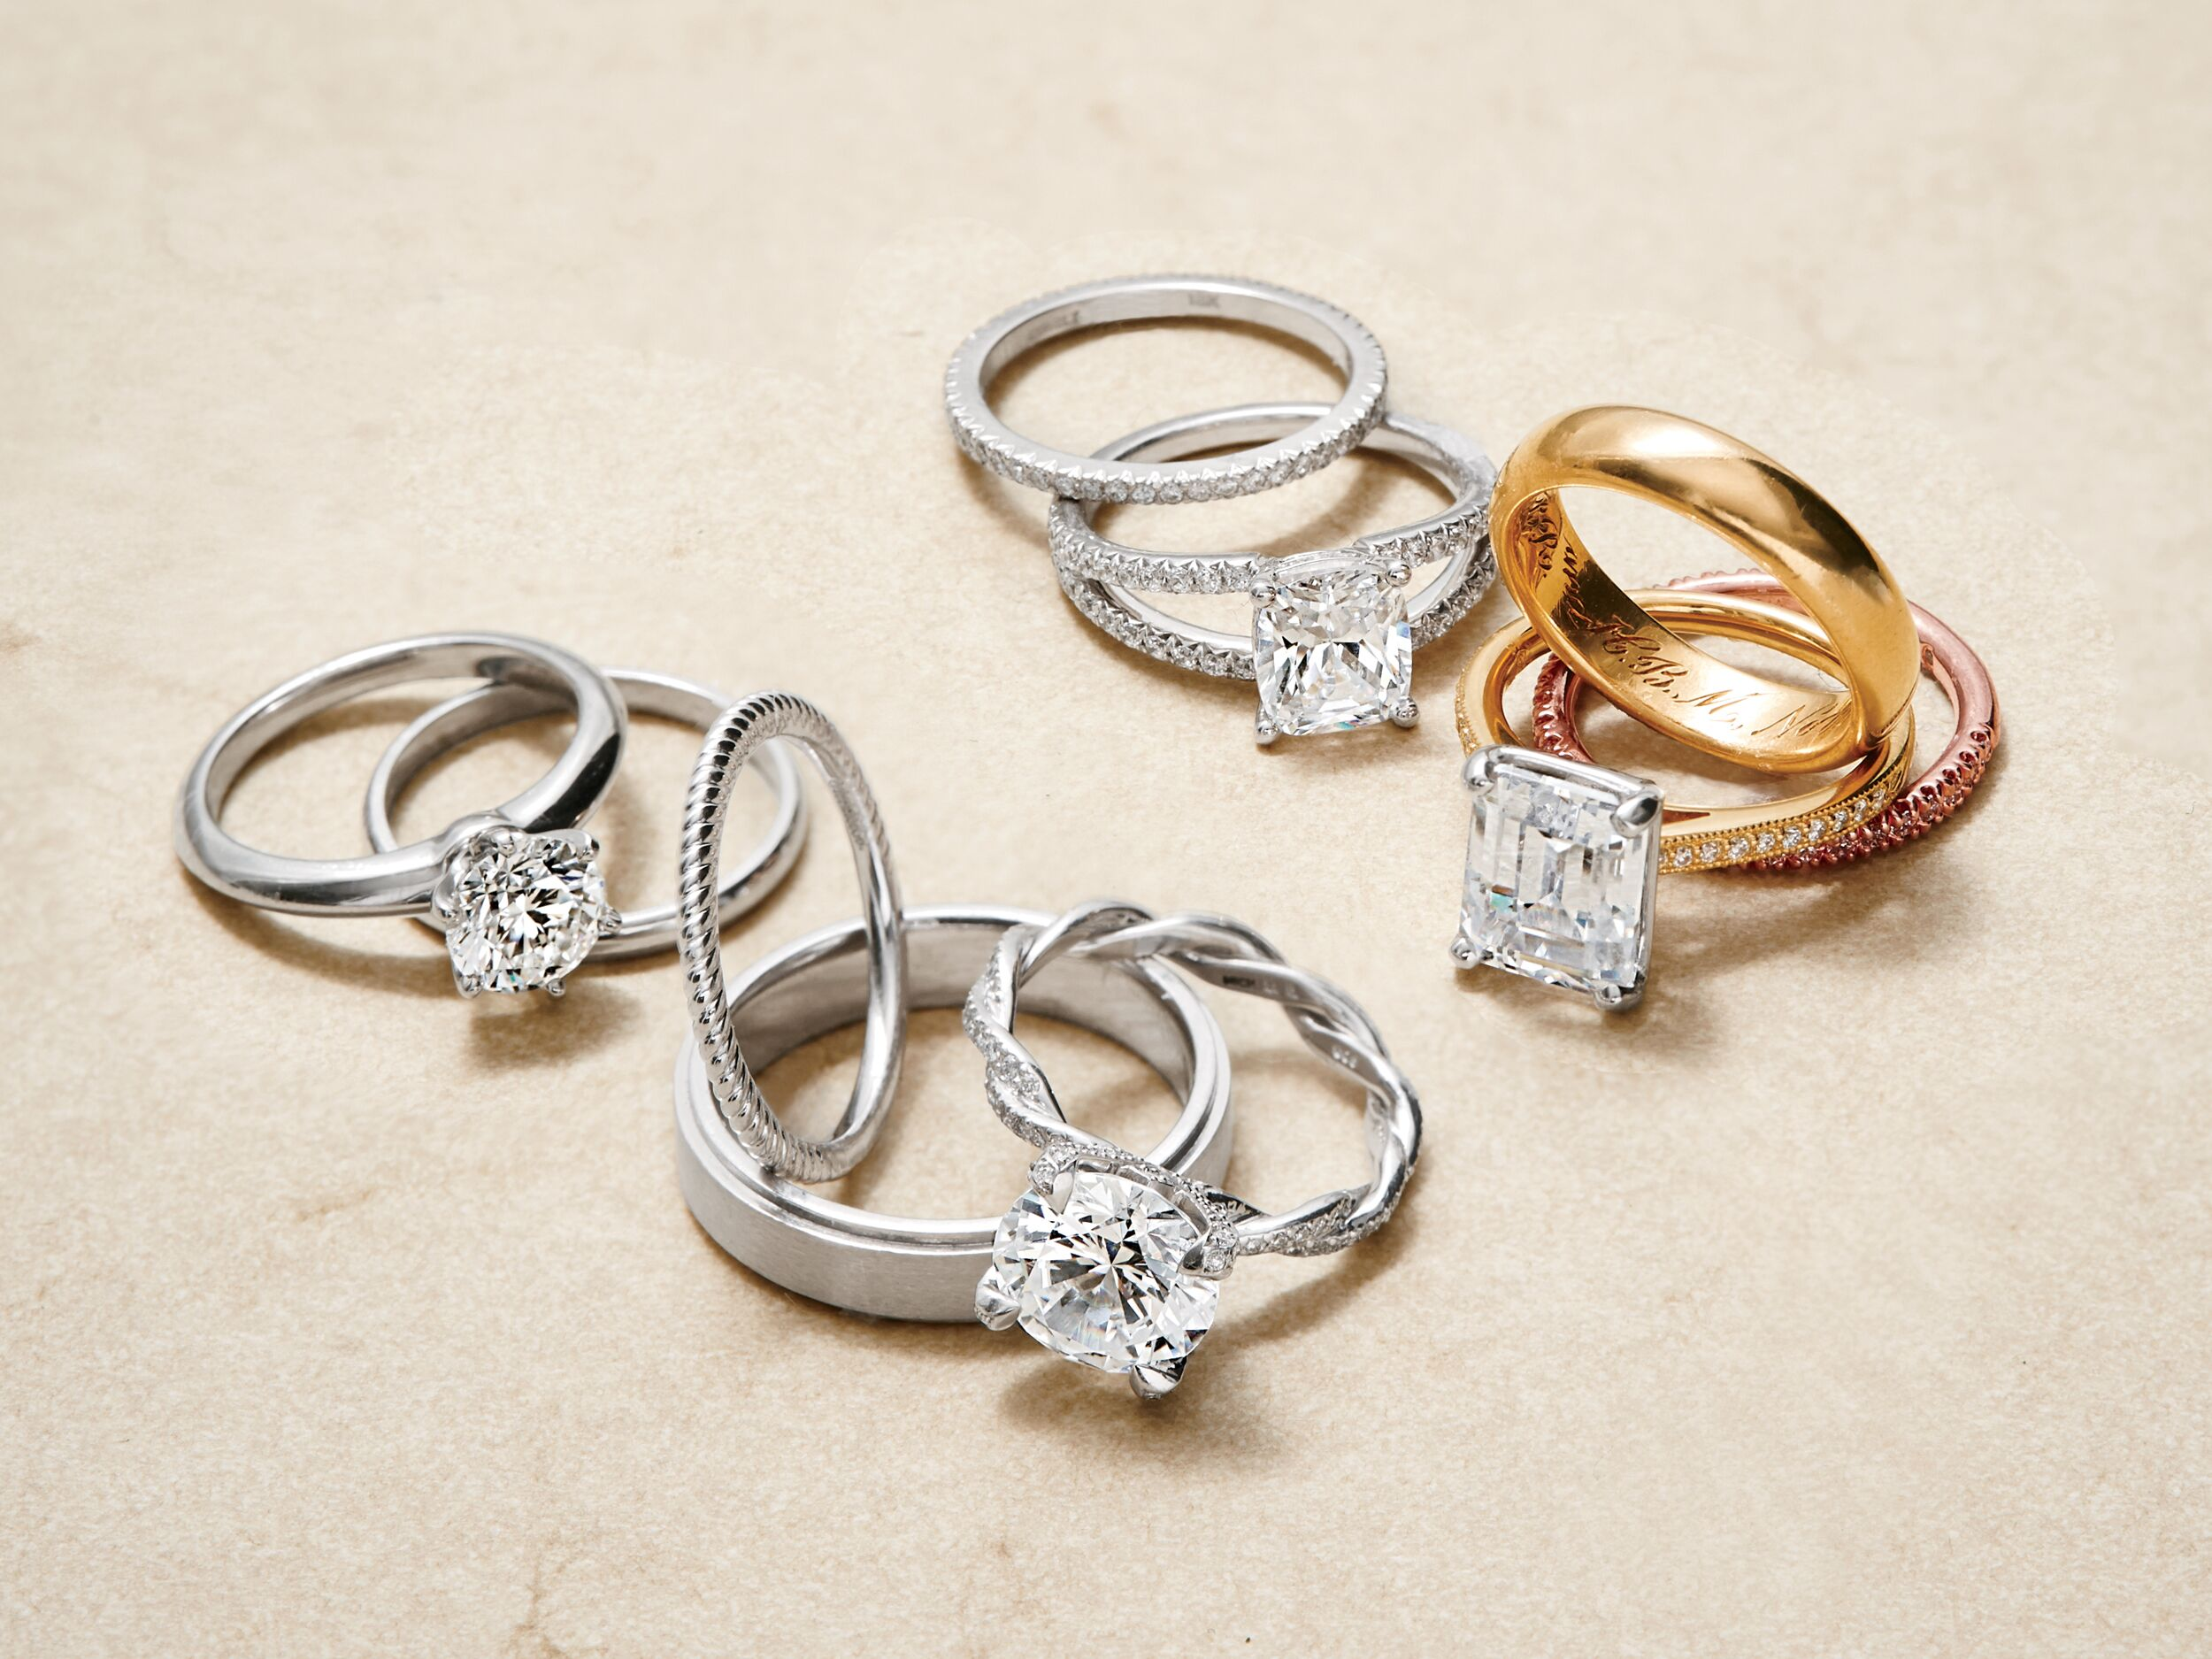 11 ways to pick the perfect wedding ring - Perfect Wedding Ring